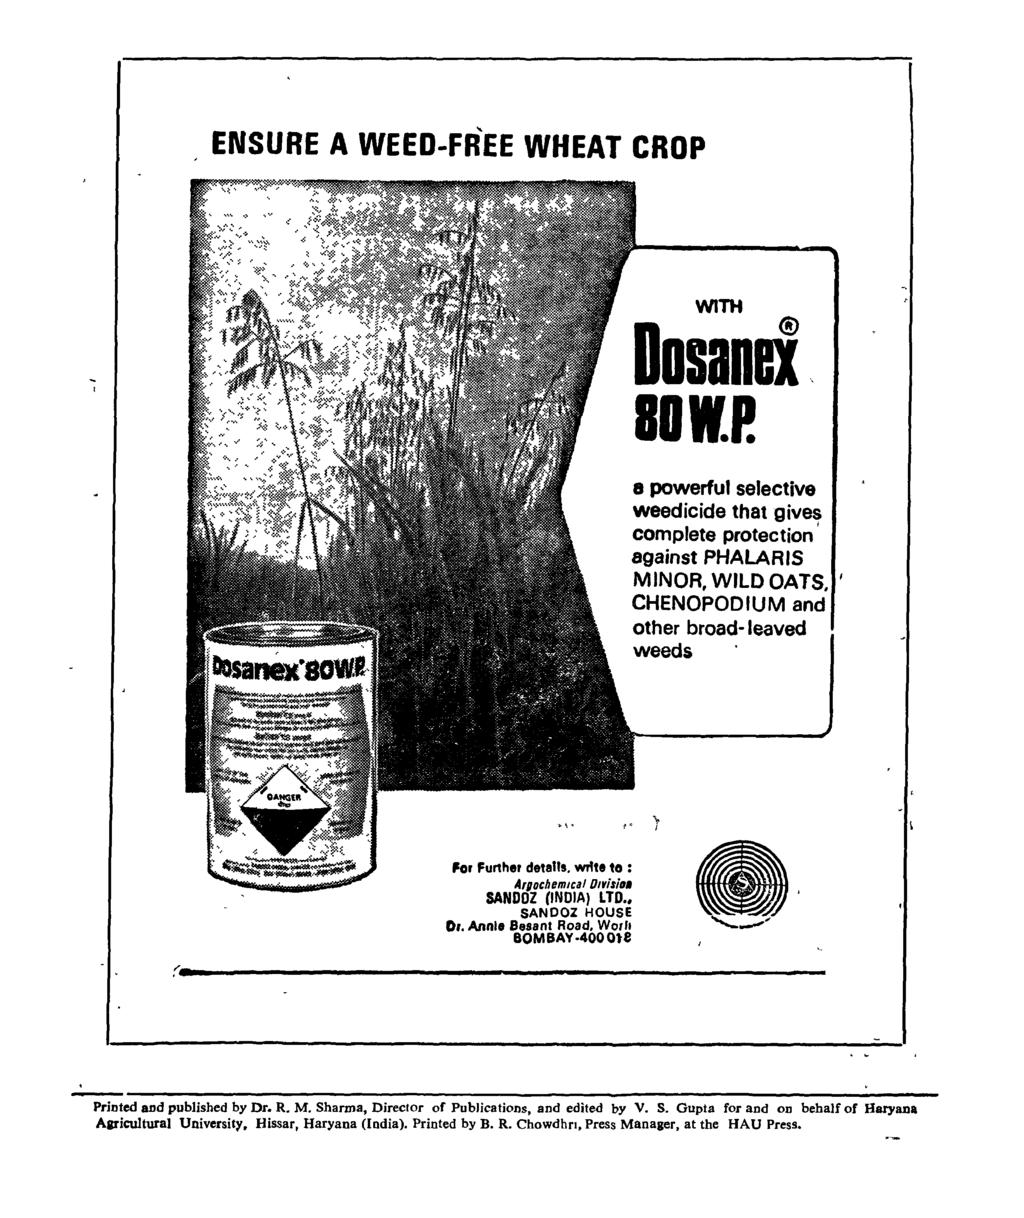 "ENSURE A WEED-FREE WHEAT CROP WITH Dosand BOI.P. 8 powerful selective weedicide that gives I complete protection against PHALAAIS MINOA, WILD OATS. I CHENOPOD IUM and other broad-leaved weeds I "" (."